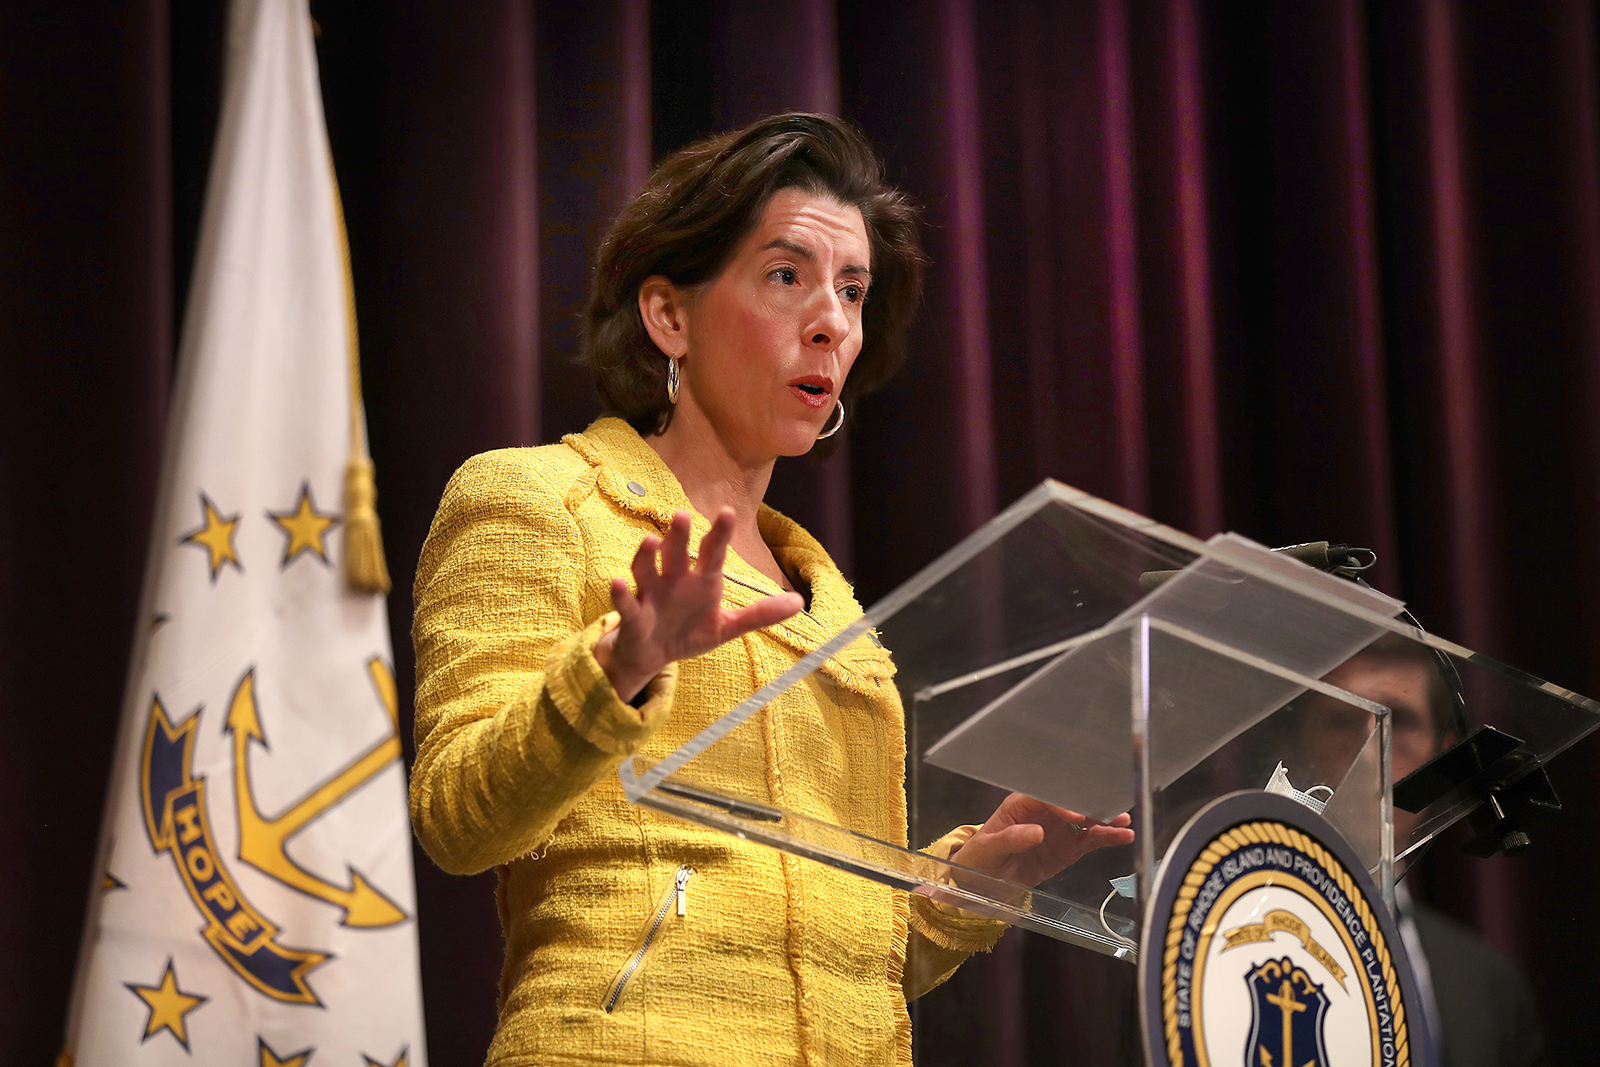 Rhode Island Gov. Gina M. Raimondo speaks at a news conference giving a coronavirus update at the Veterans Memorial Auditorium in Providence, Rhode Island on May 12.